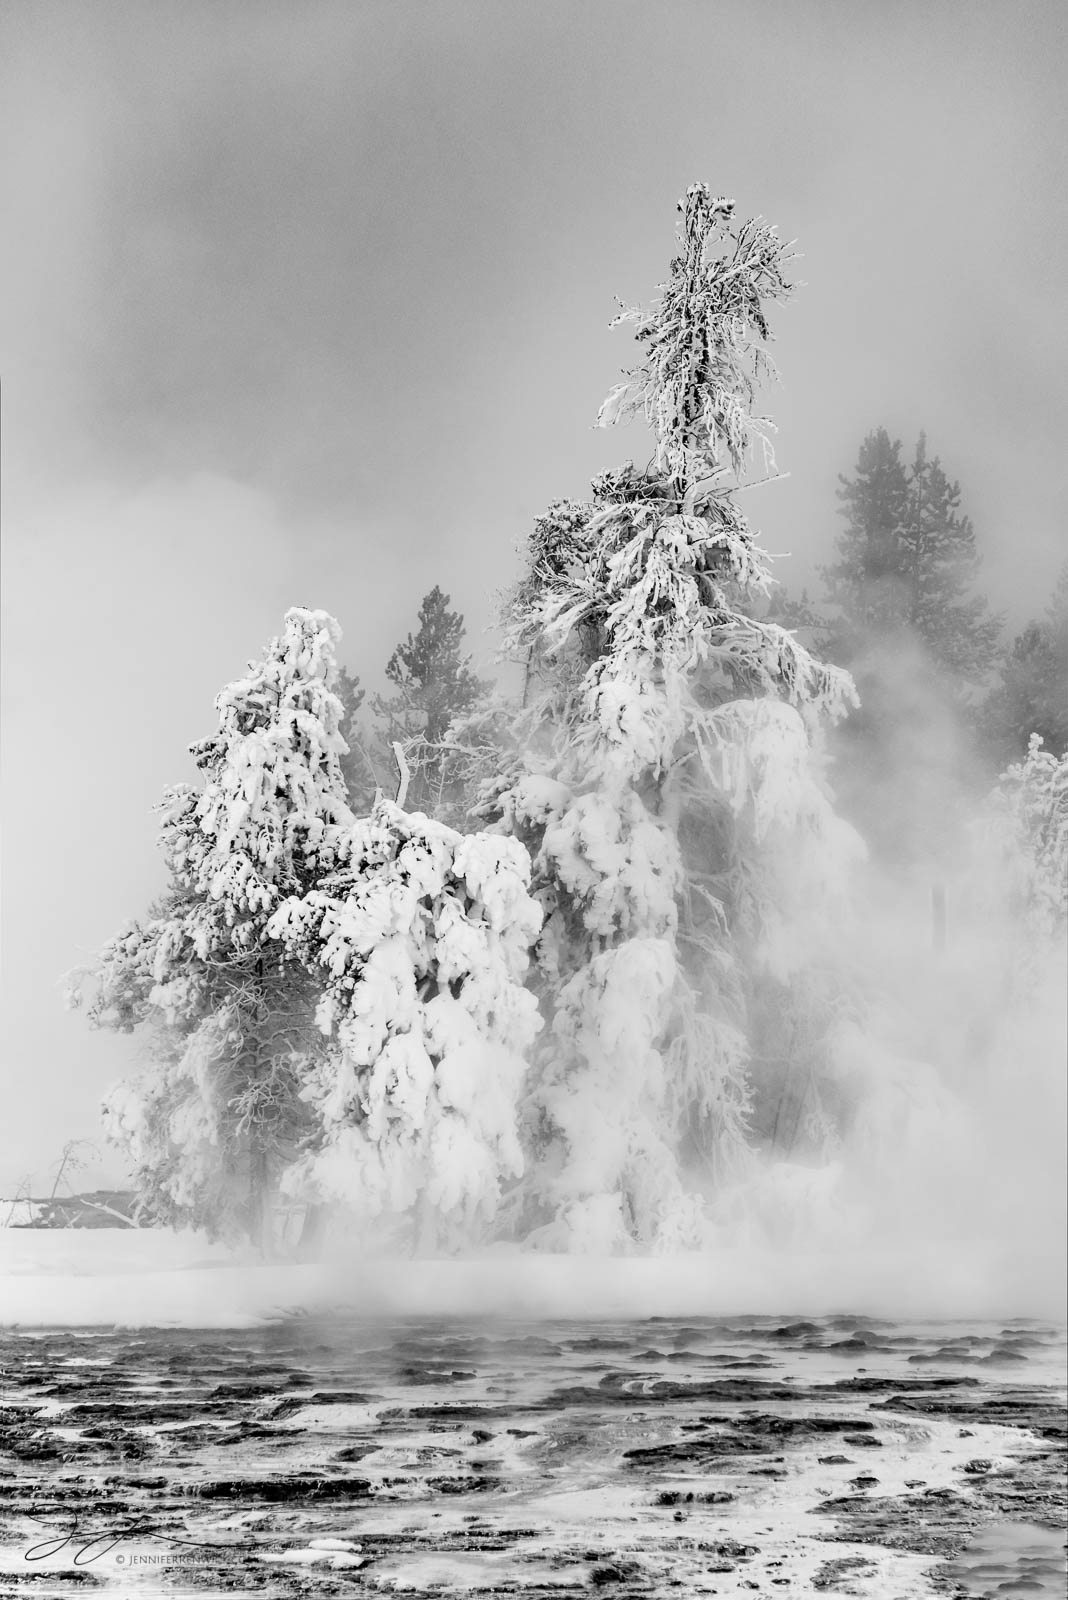 Winter trees in Yellowstone National Park appear to be marooned on a piece of land surrounded by thermal springs. This image...